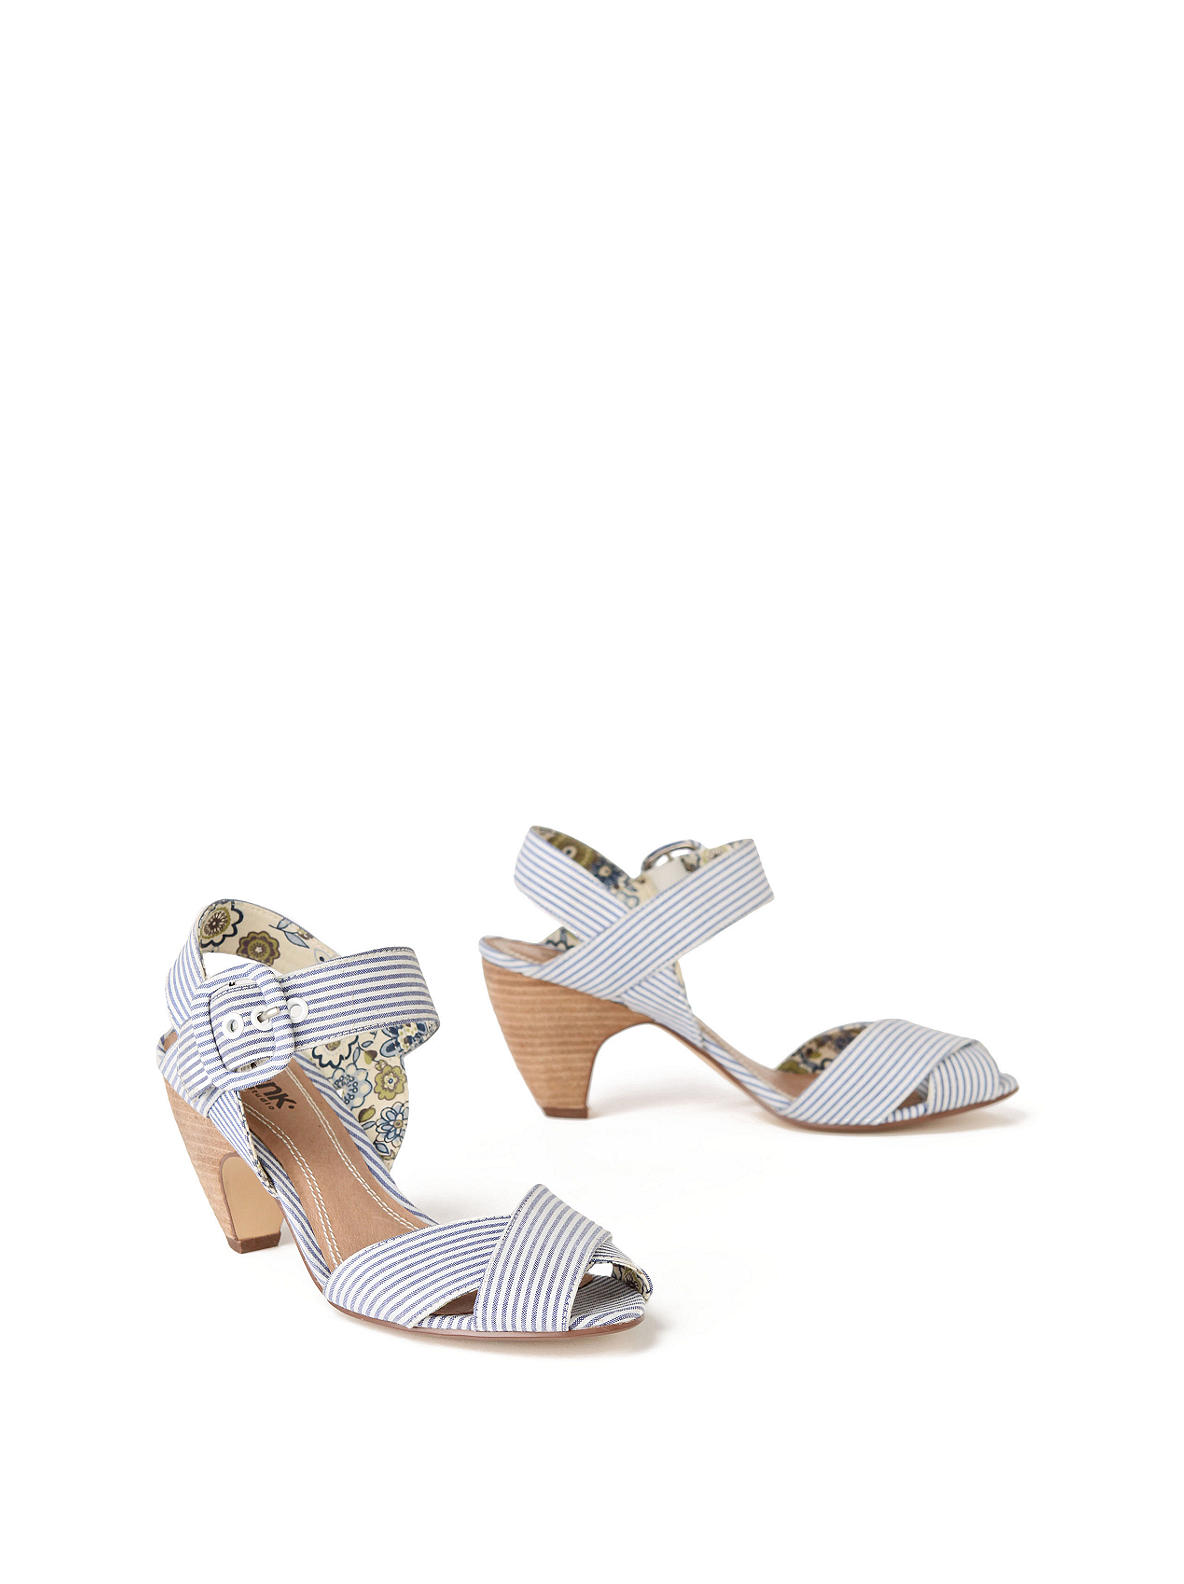 Sailor-Striped Heels - Anthropologie.com :  spring heels shoe sailor